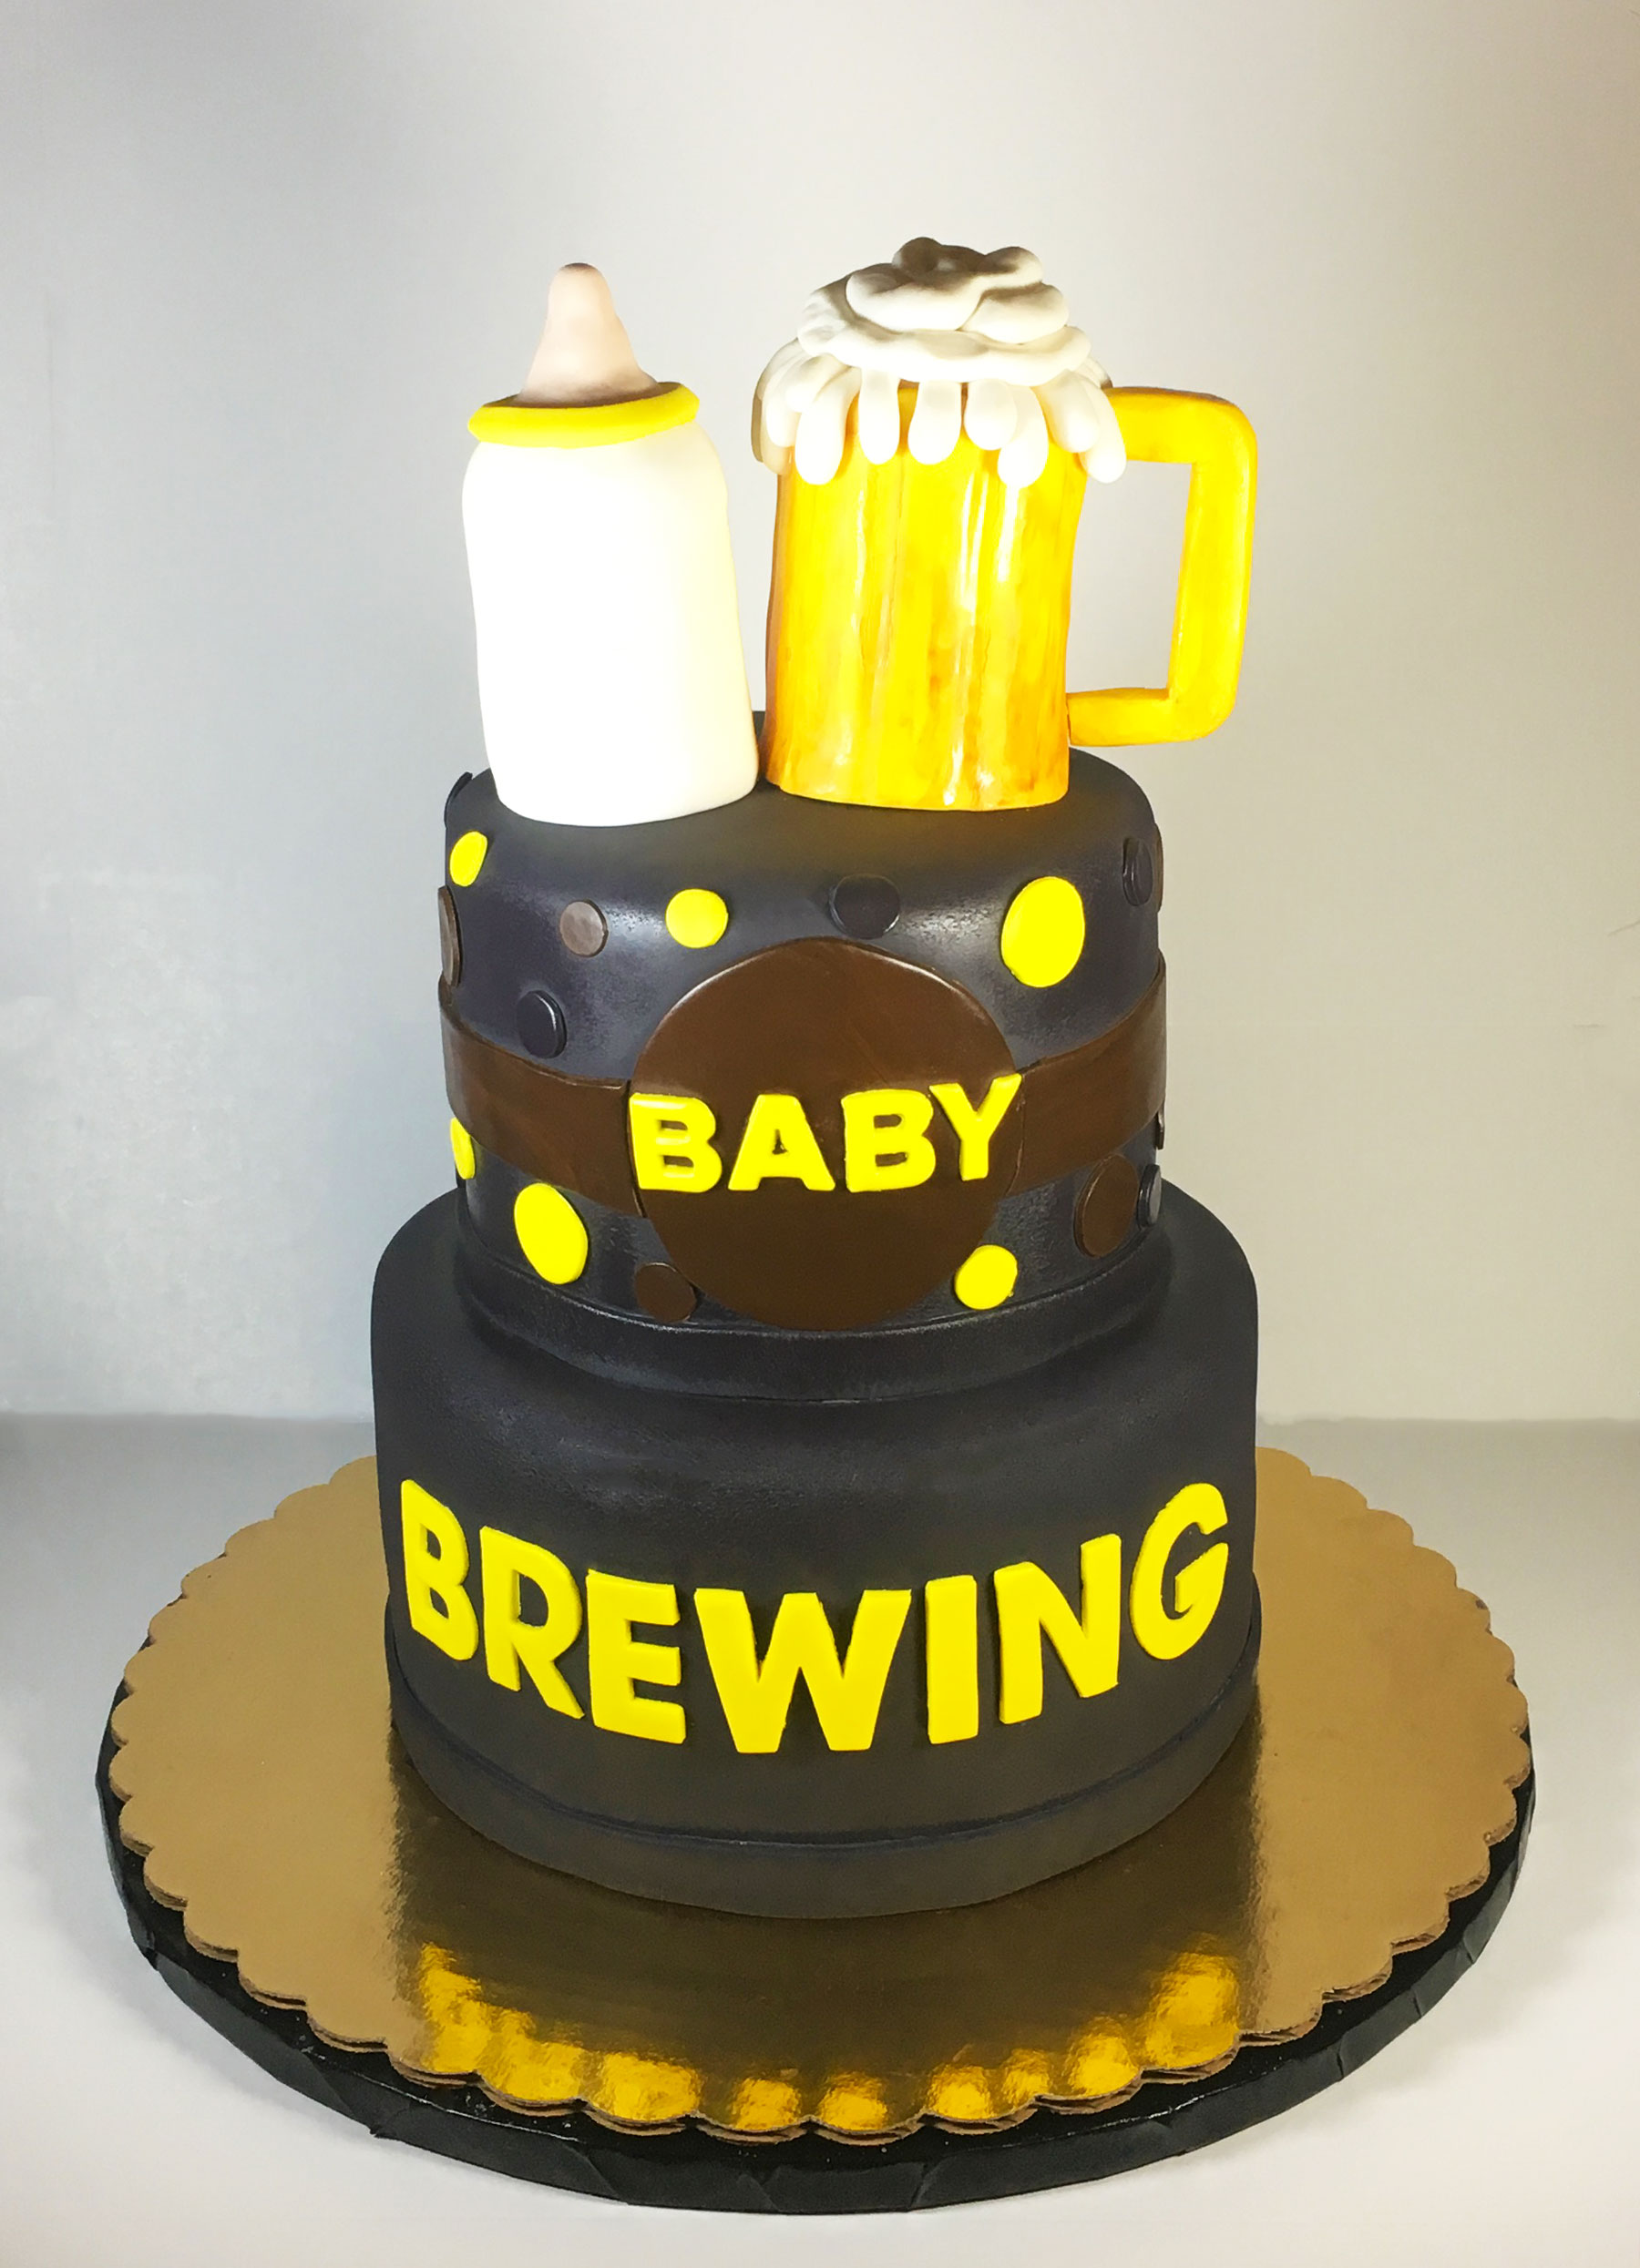 Baby Shower Brewing Cake